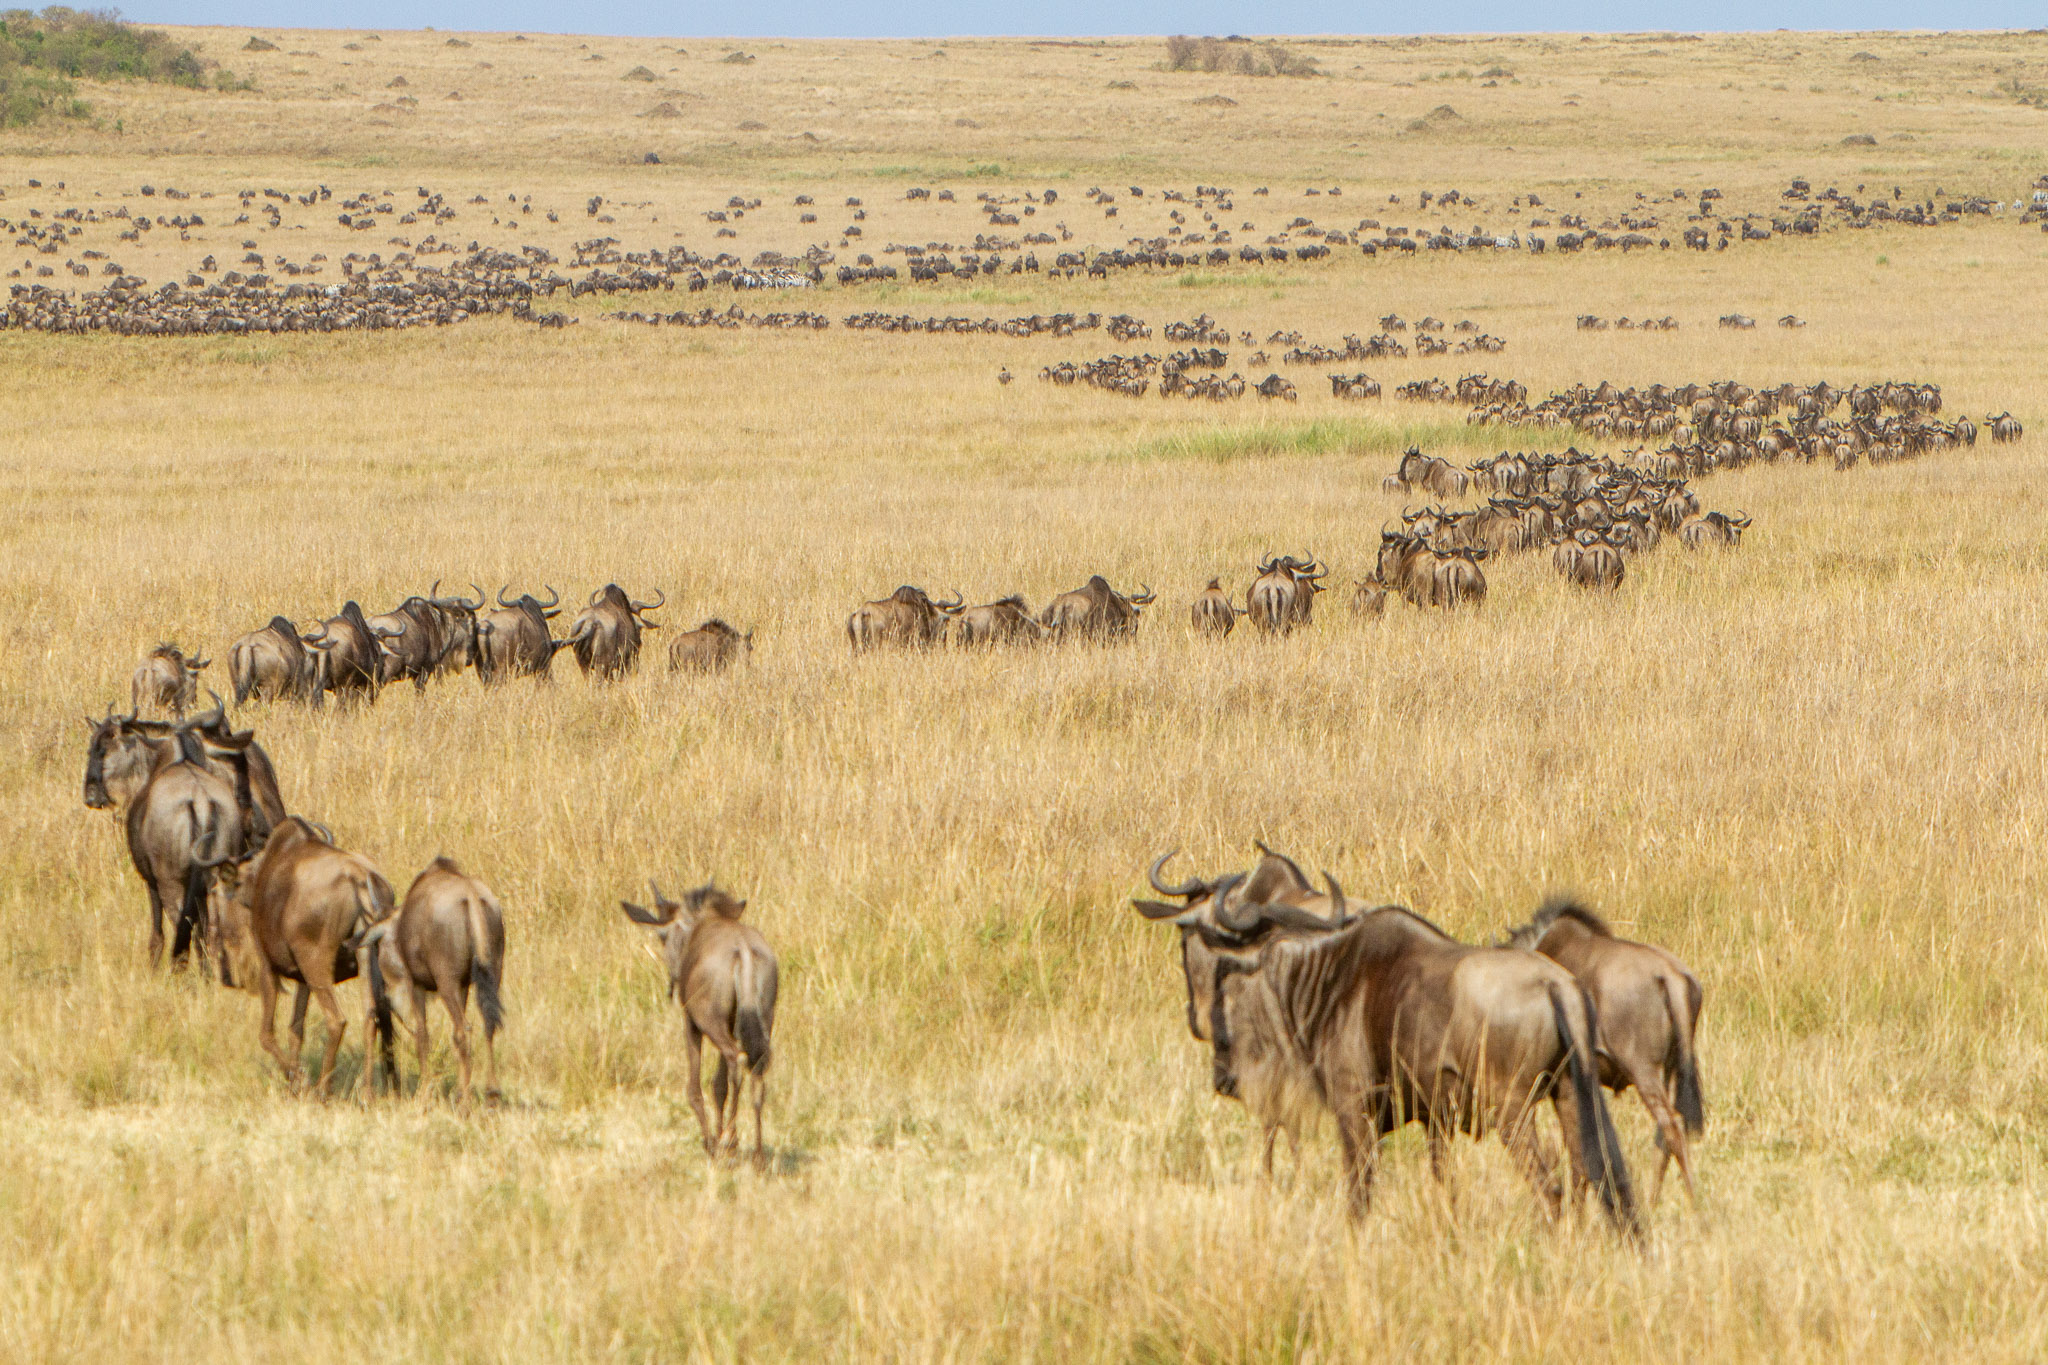 Securing migratory corridors and biodiversity for climate stability